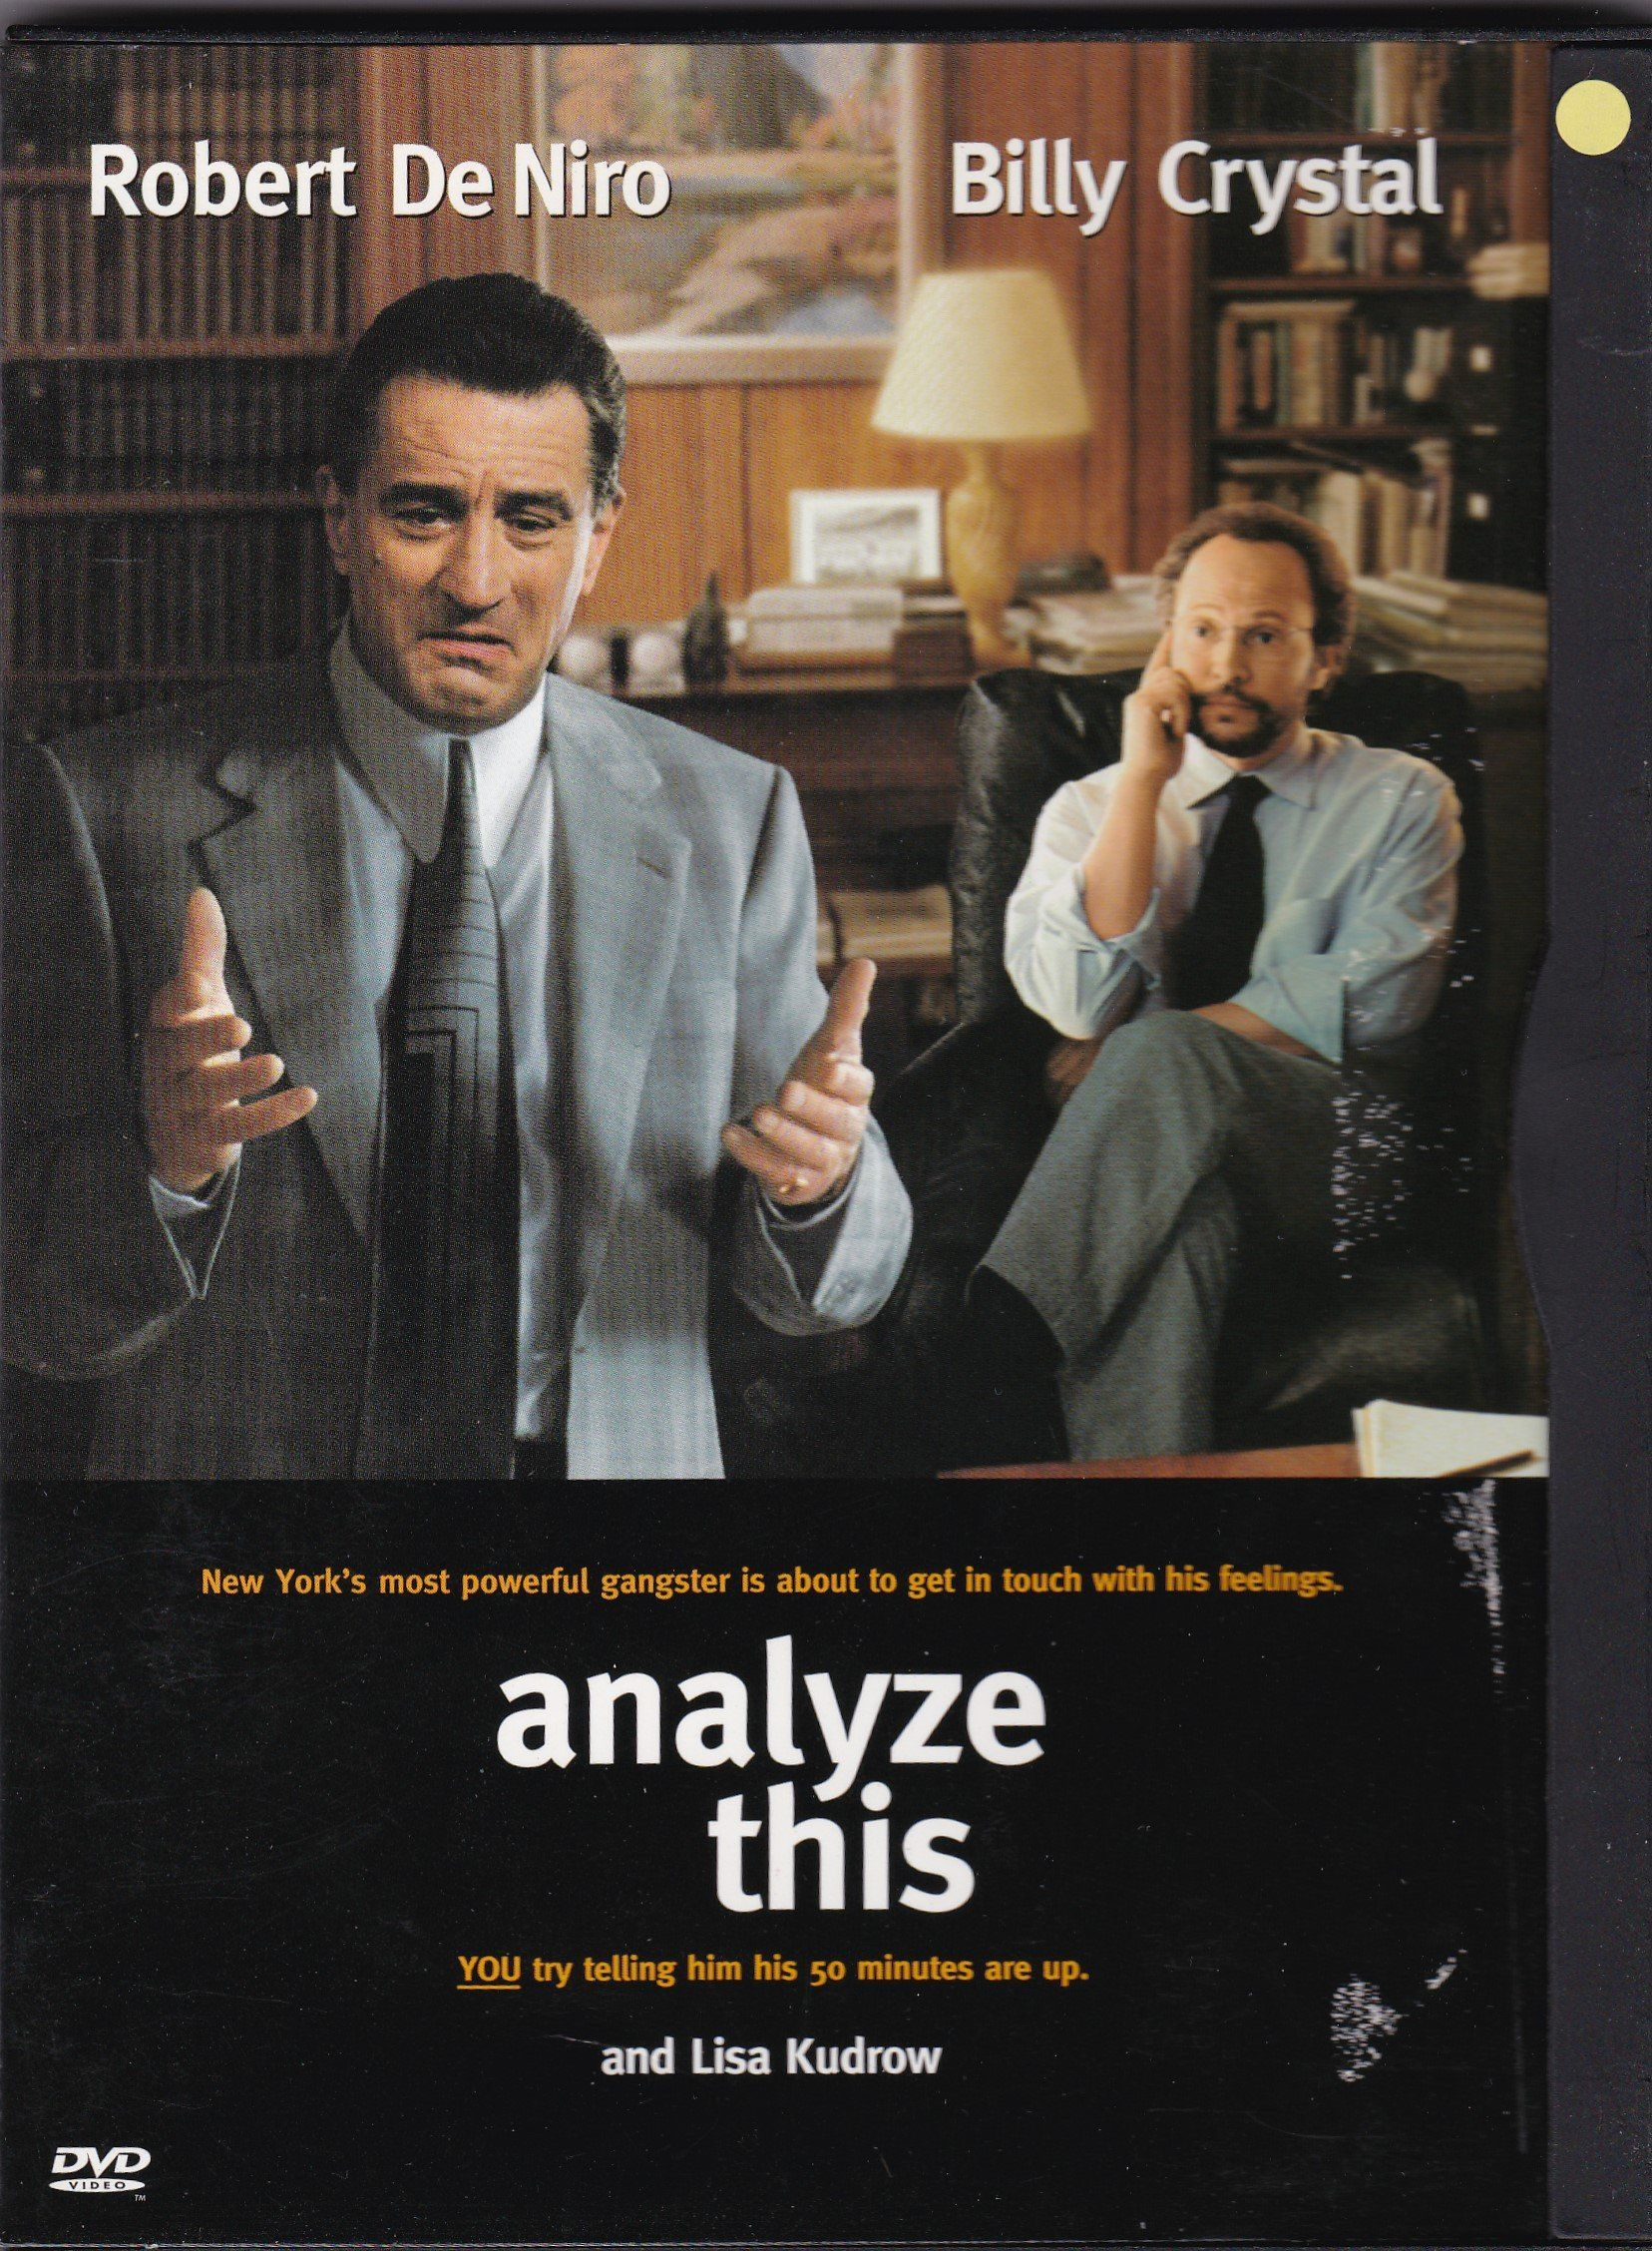 Dvd Analyze This With Robert De Niro And Billy Crystal In 2020